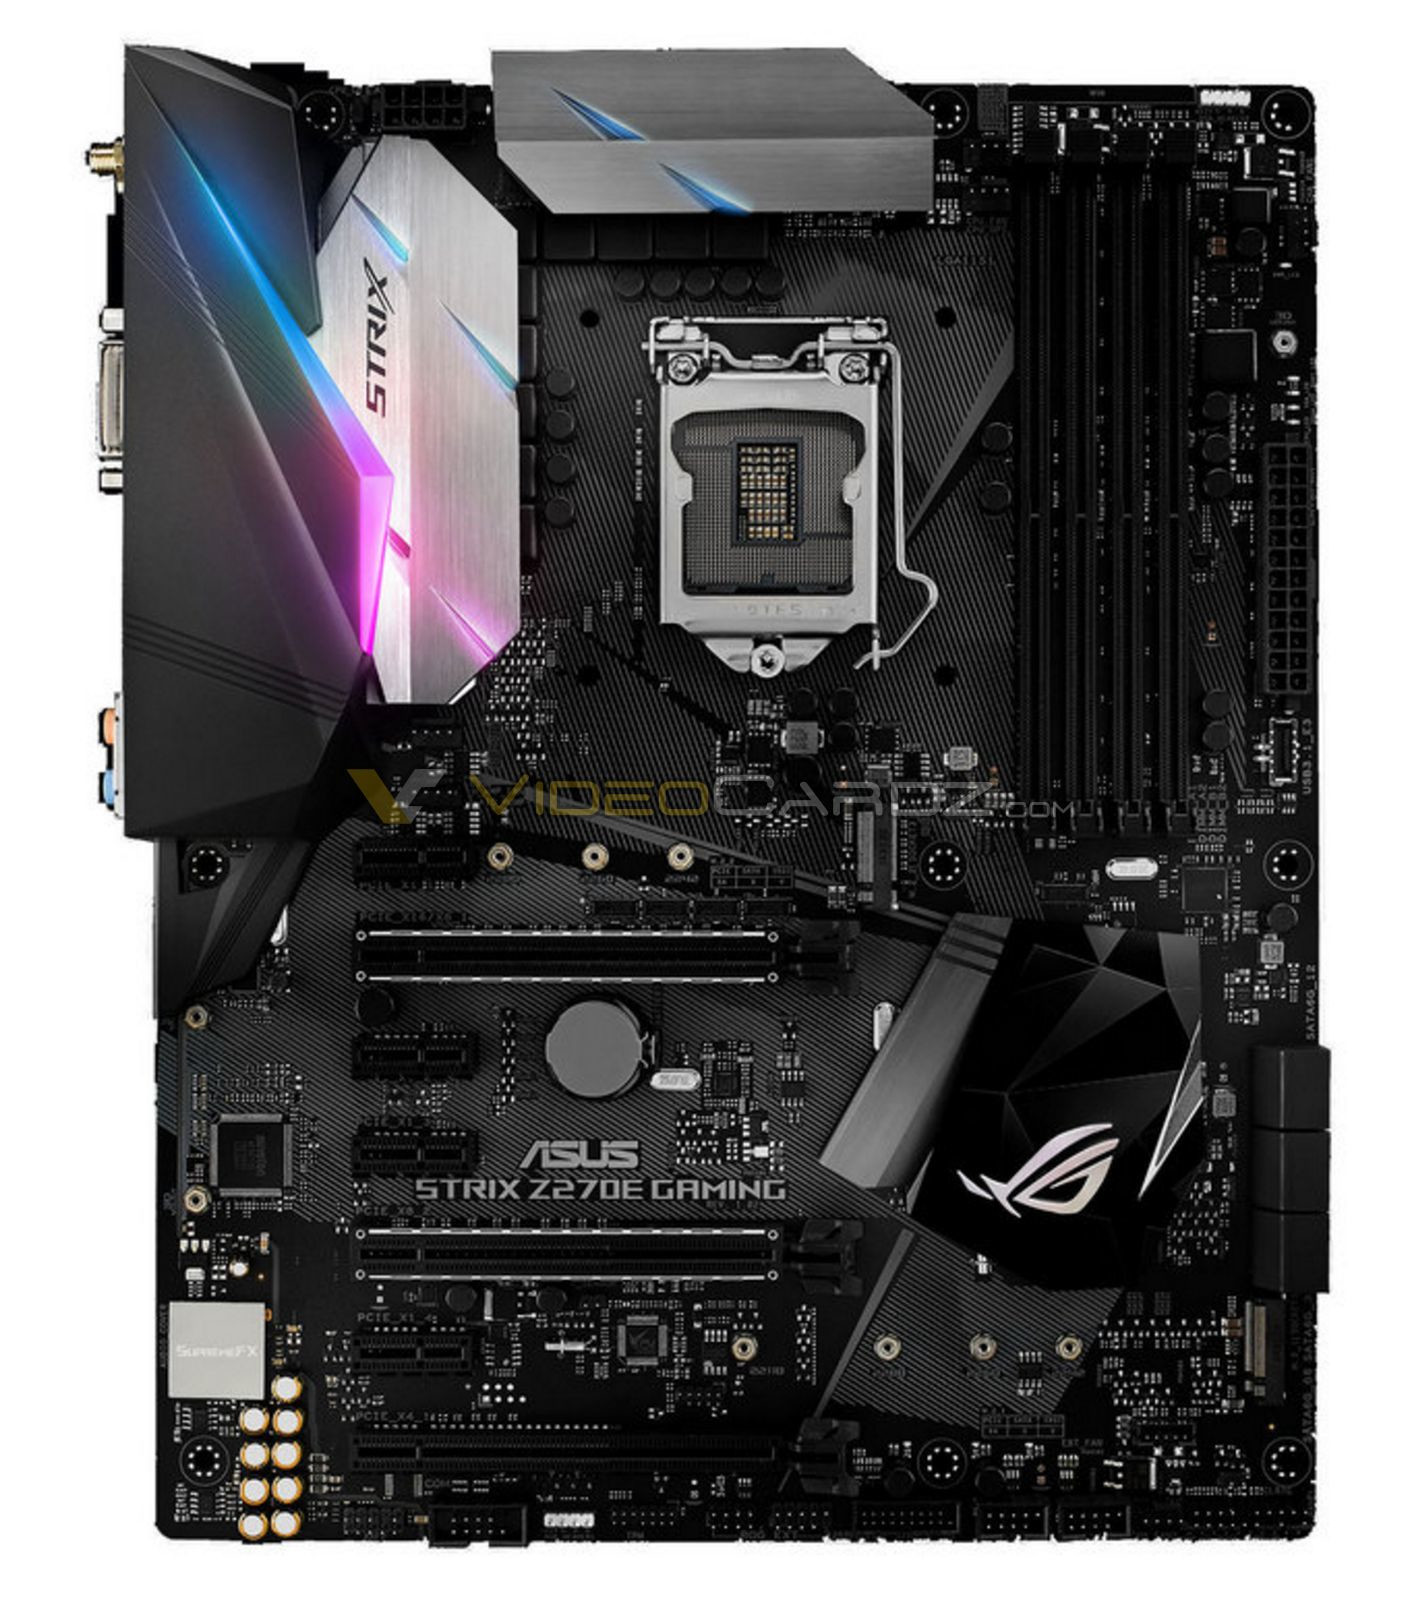 ASUS Intros Four Z270 STRIX Series Motherboards | TechPowerUp